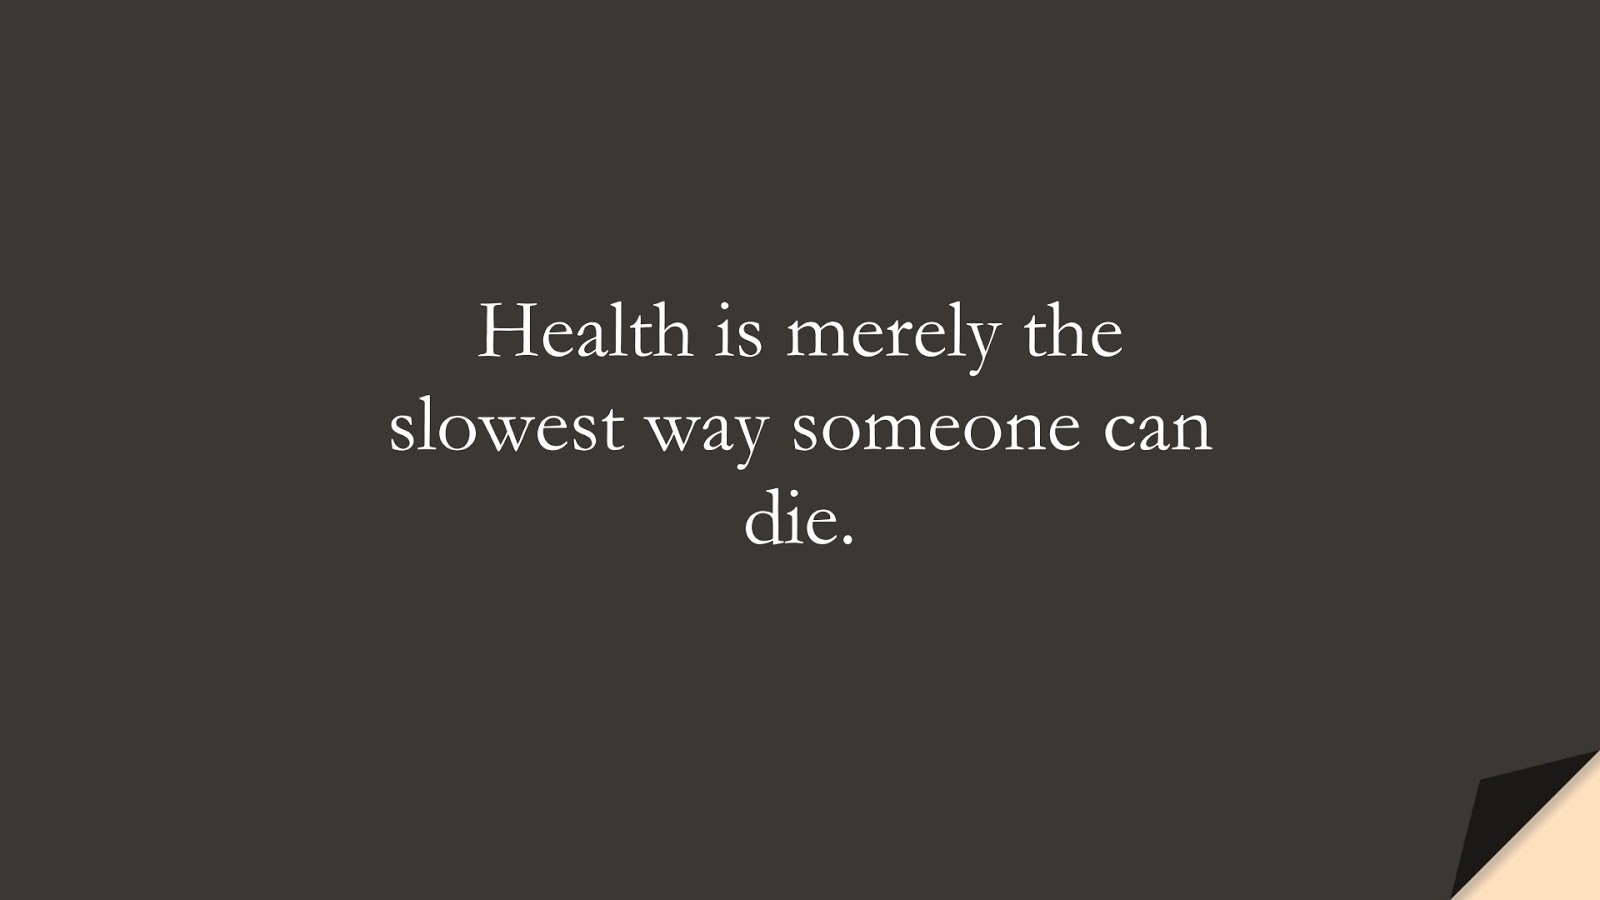 Health is merely the slowest way someone can die.FALSE